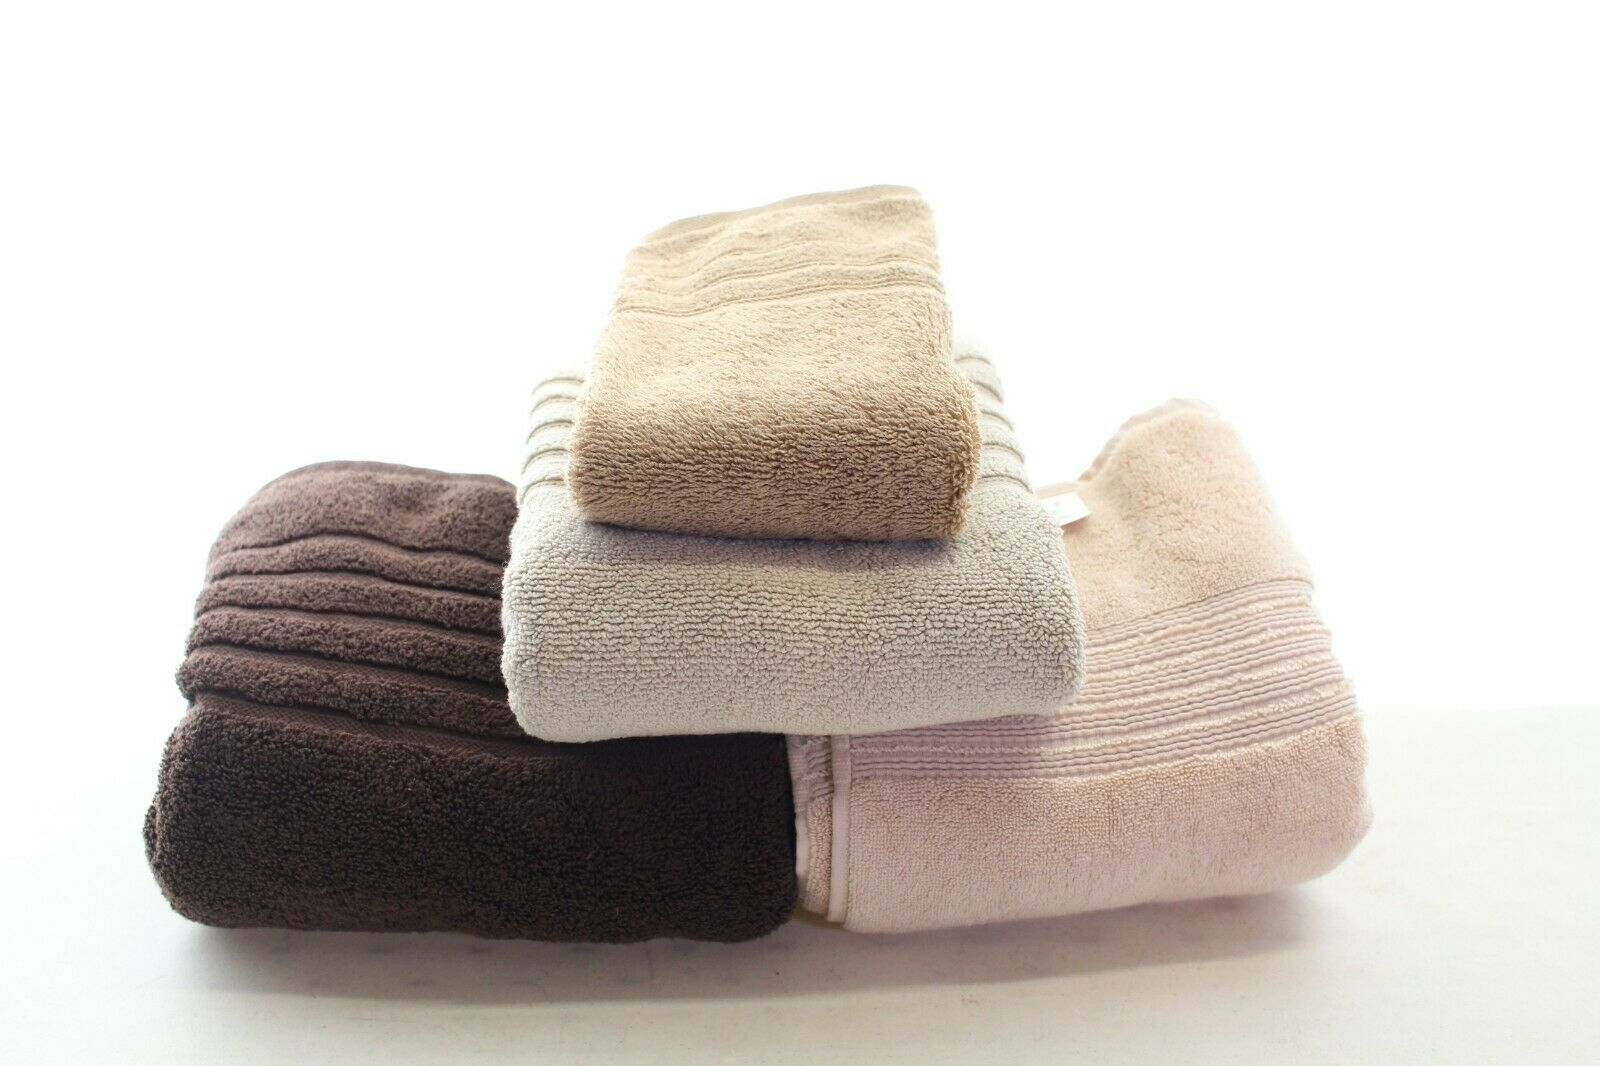 Hotel Collection 2 Bath Towels, 1 Mat, and 1 Hand Turkish Cotton L97598